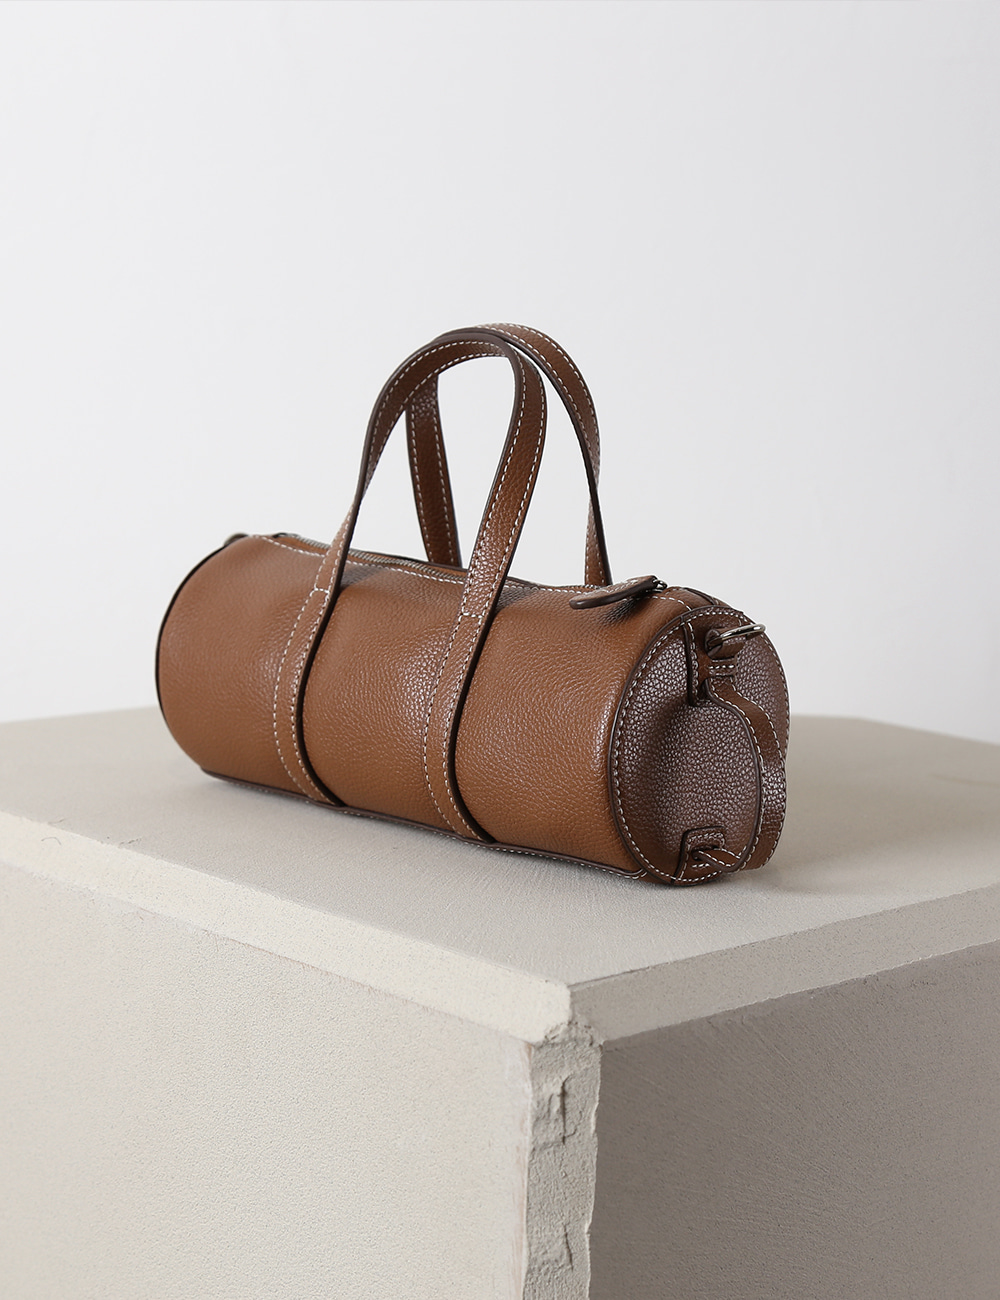 MAISON246,246 BARREL ALL LEATHER BAG - TAN,No.246